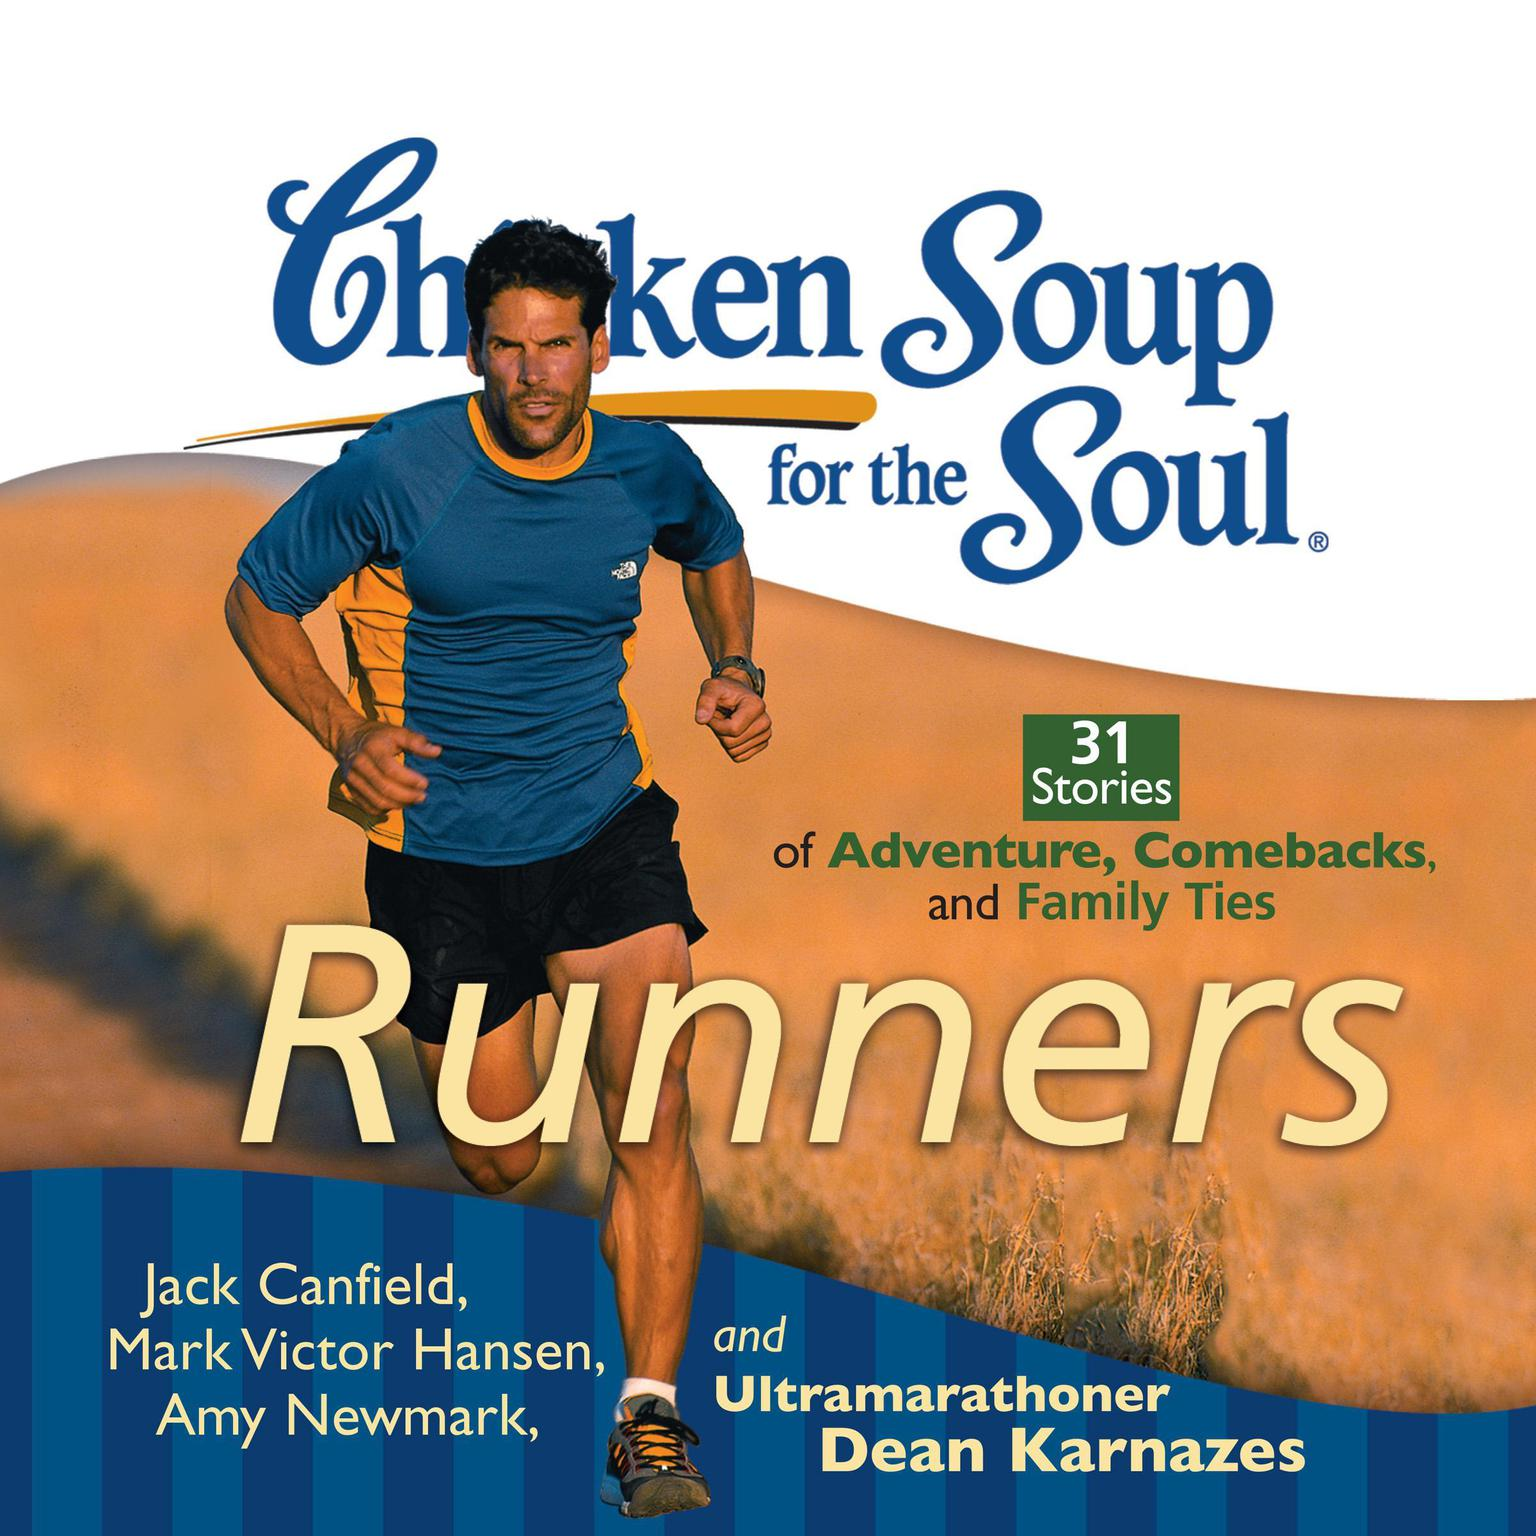 Chicken Soup for the Soul: Runners: 31 Stories of Adventure, Comebacks, and Family Ties Audiobook, by Jack Canfield